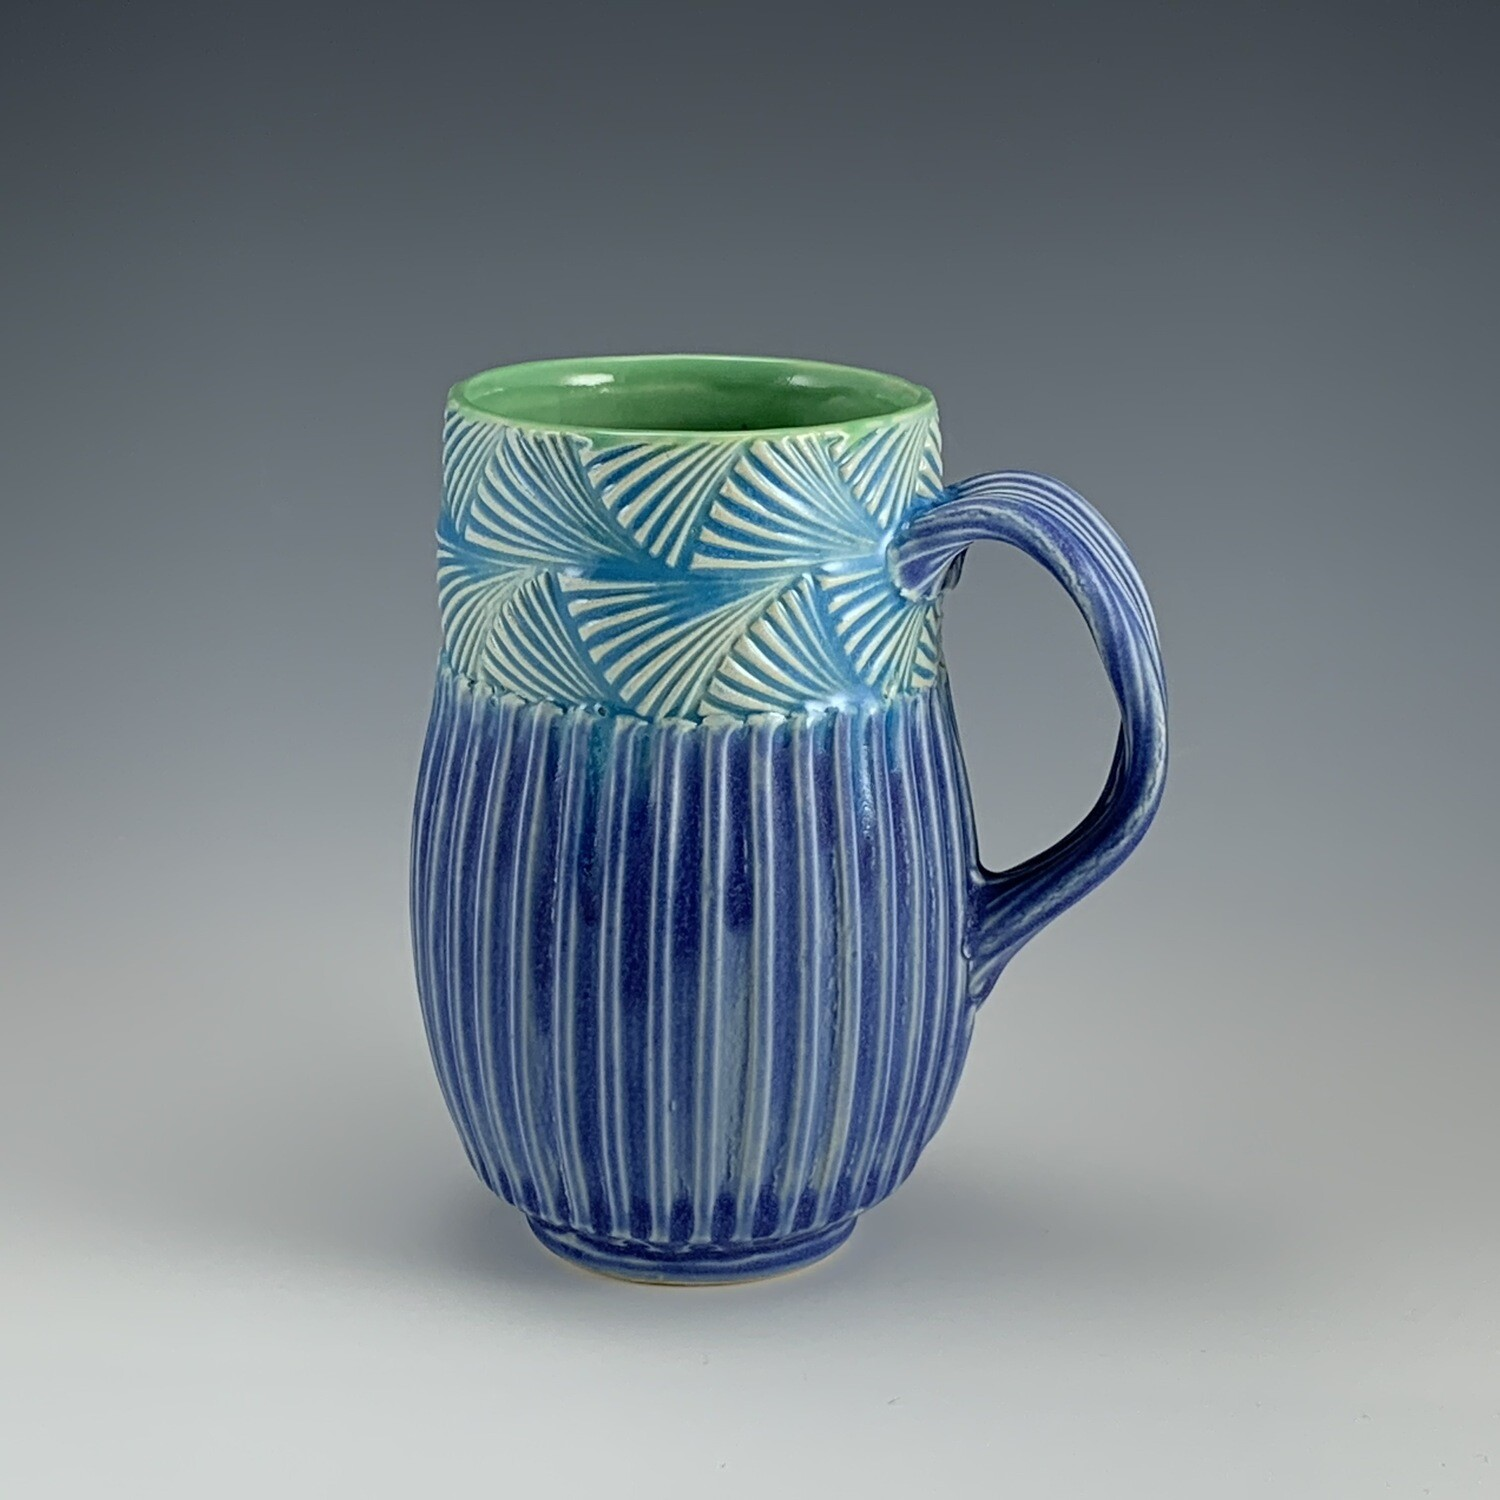 Cascadia Cup in green, lake ice blue & bloo